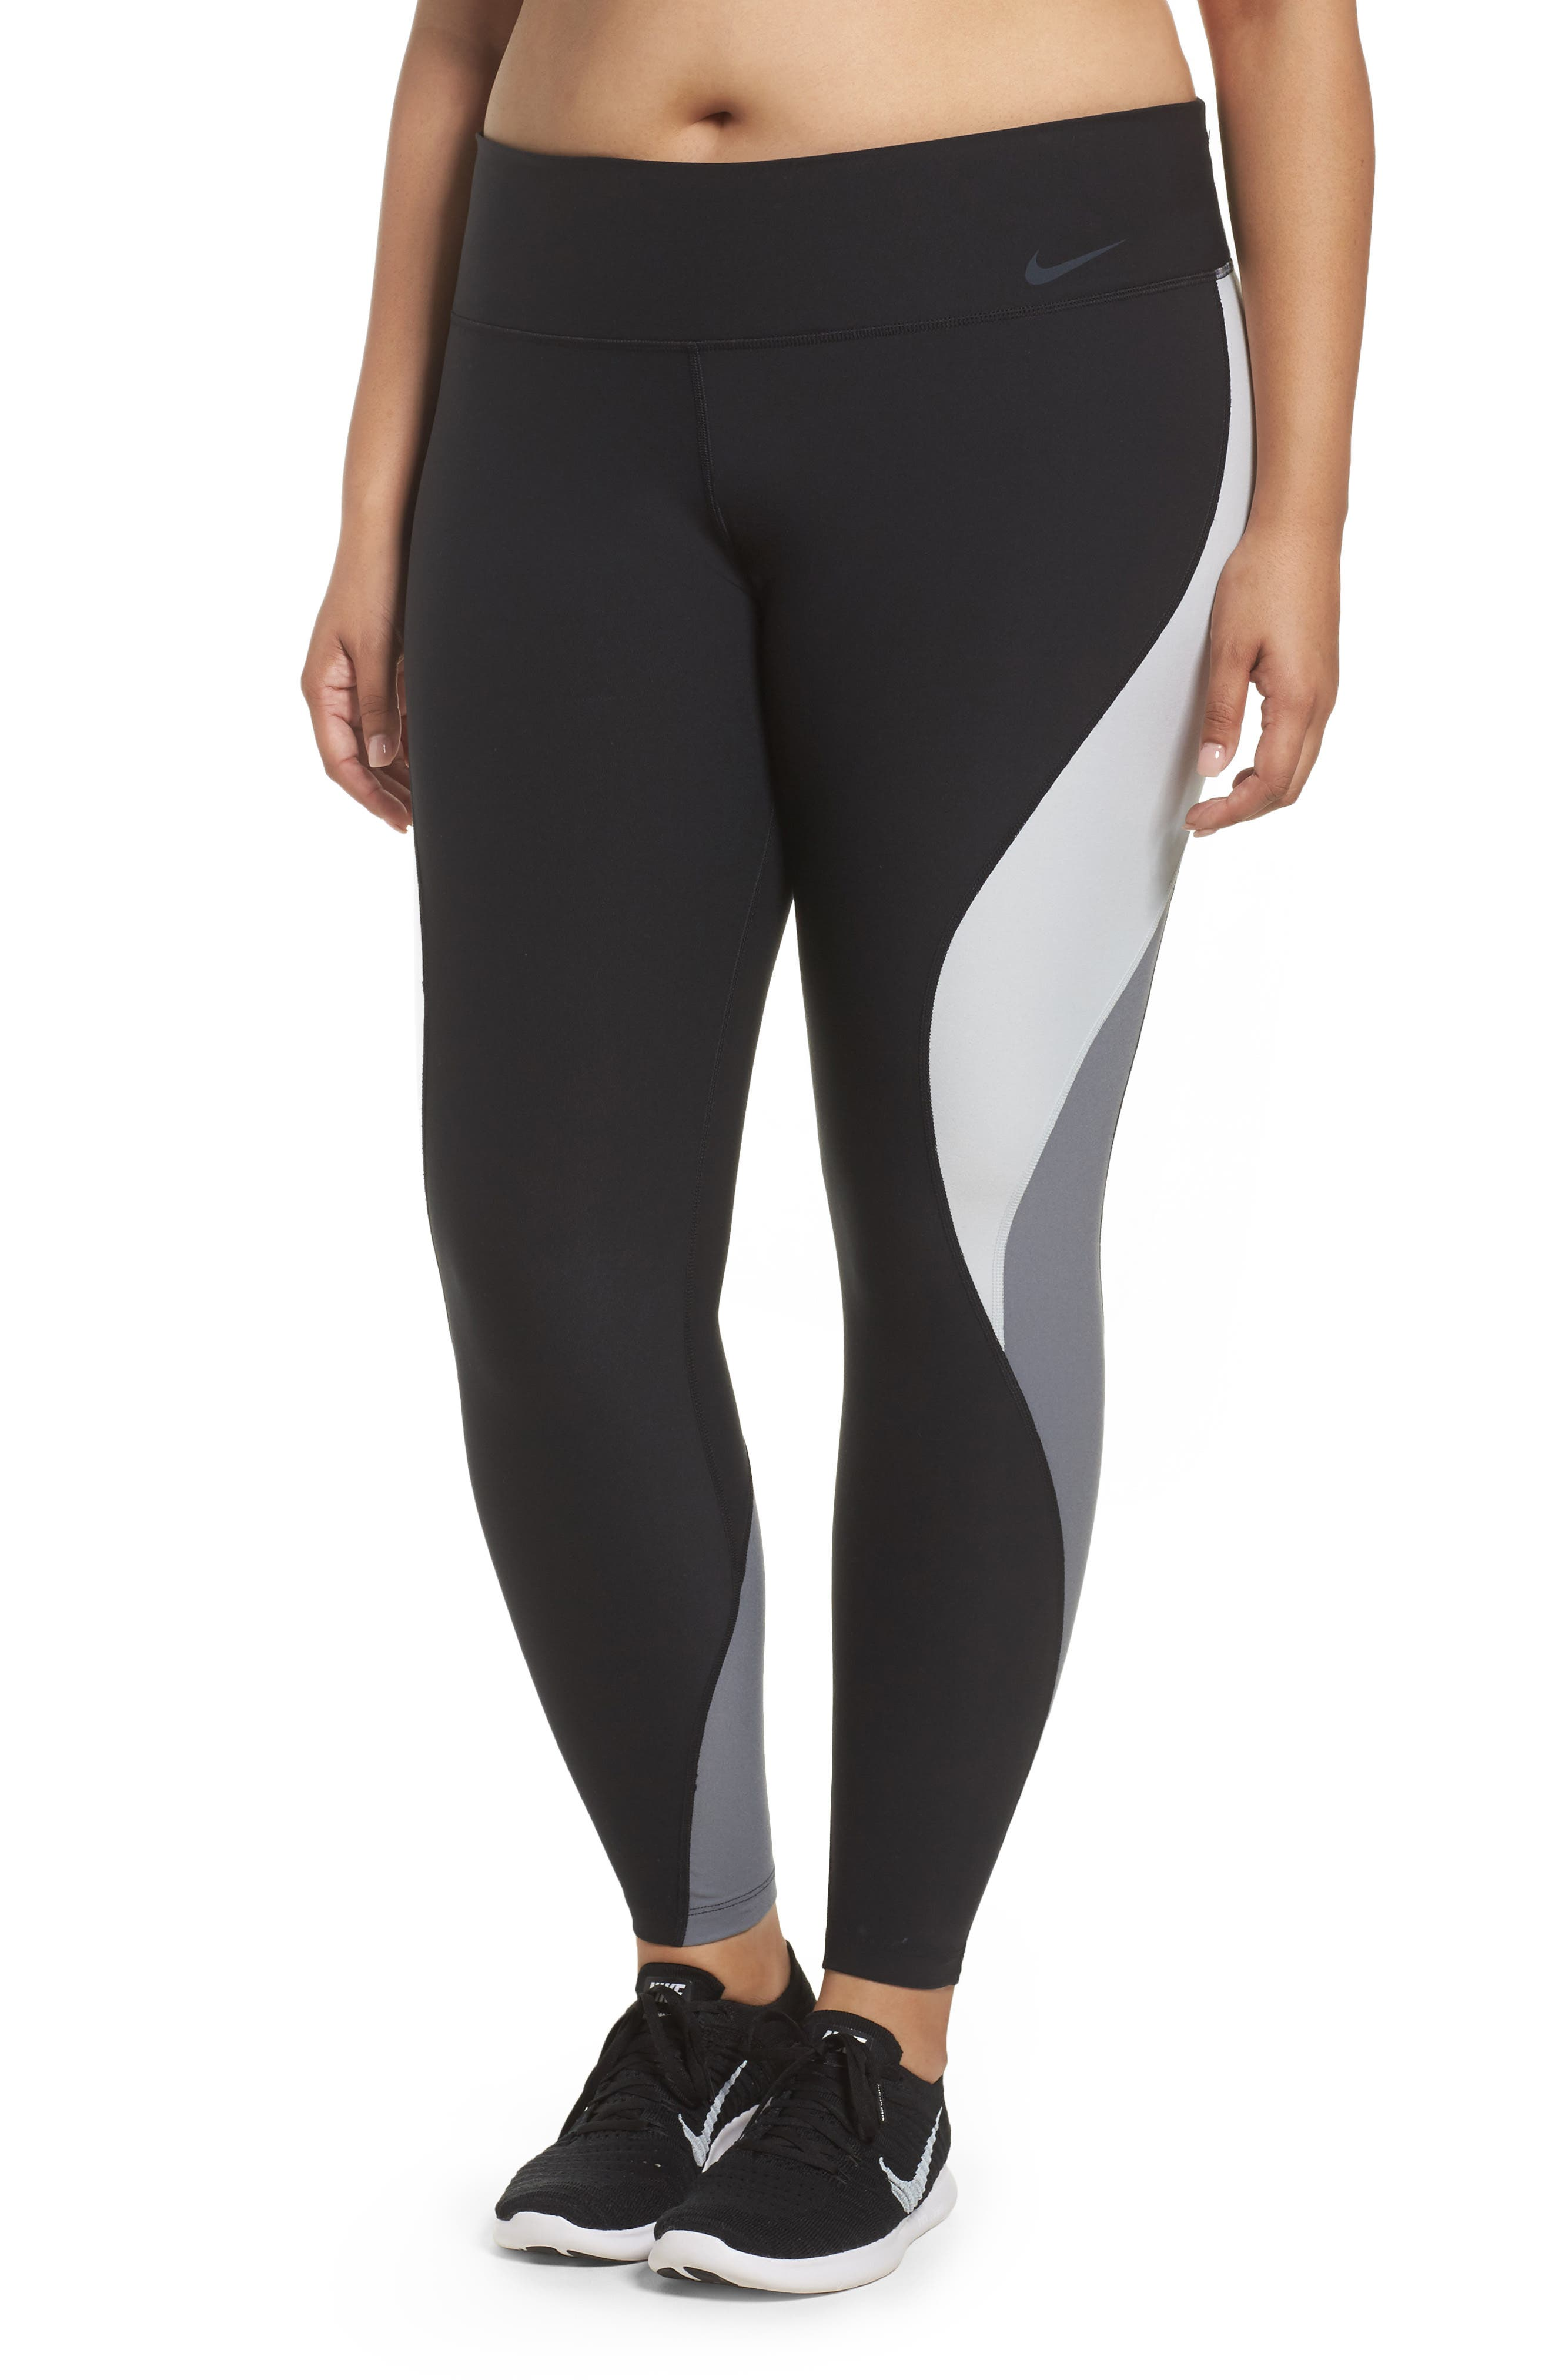 Power Legend Training Tights,                         Main,                         color, Black/ Platinum/ Grey